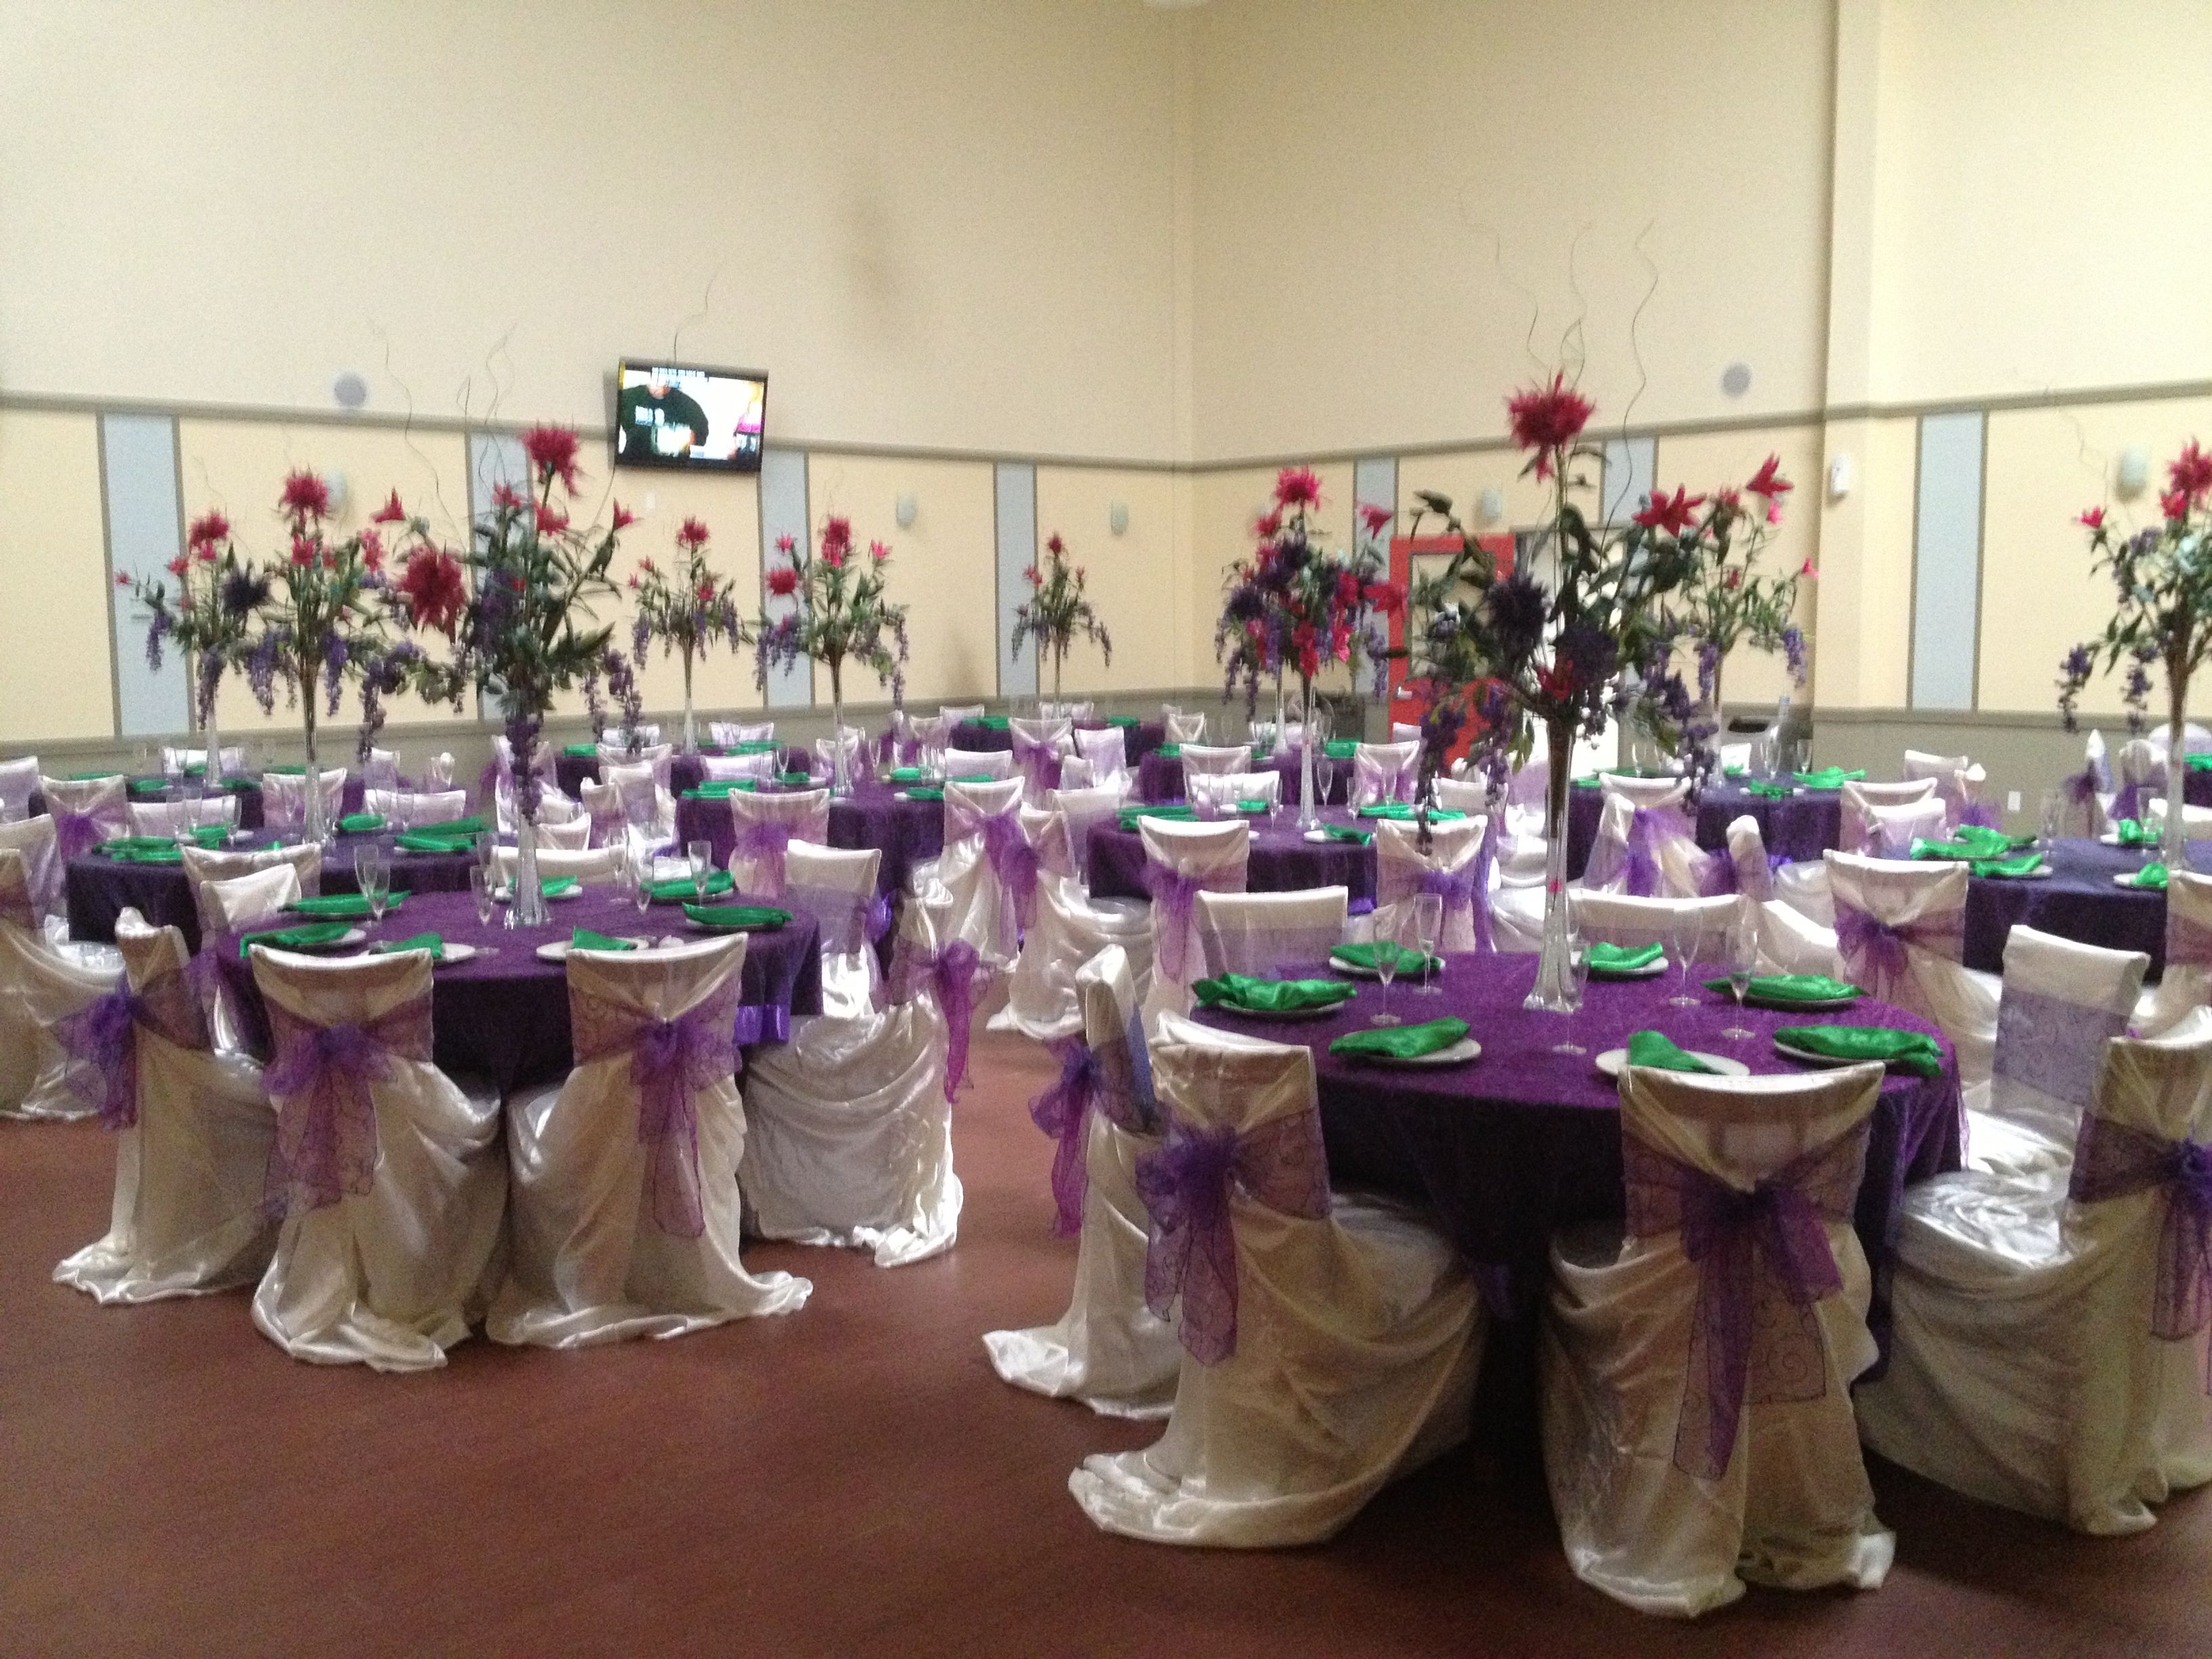 Event Venue, Private Dining Room At PacPlex, Brooklyn. Parties, Birthday,  Corporate